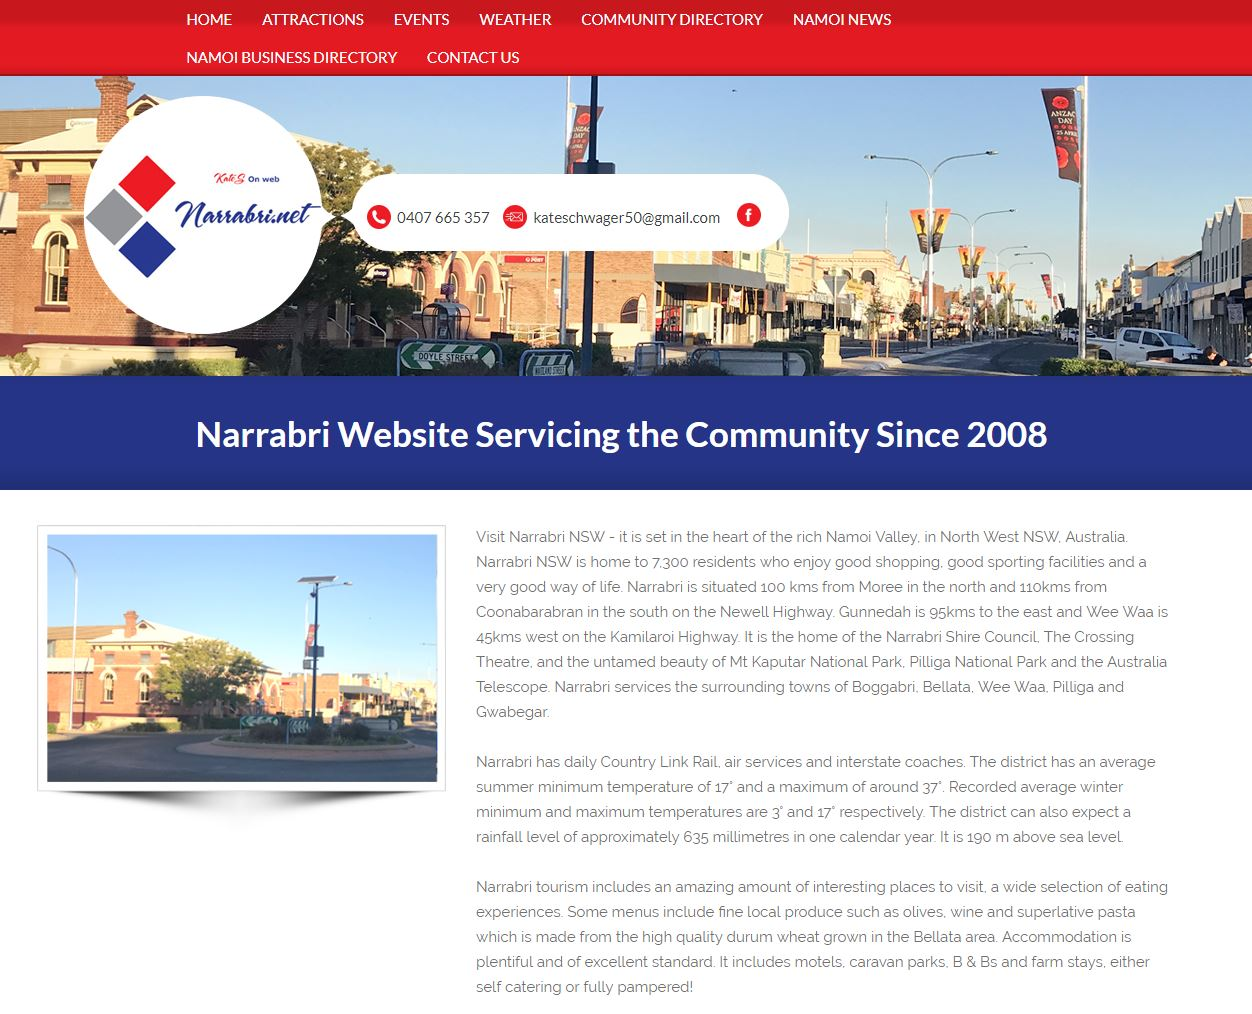 Narrabri Website